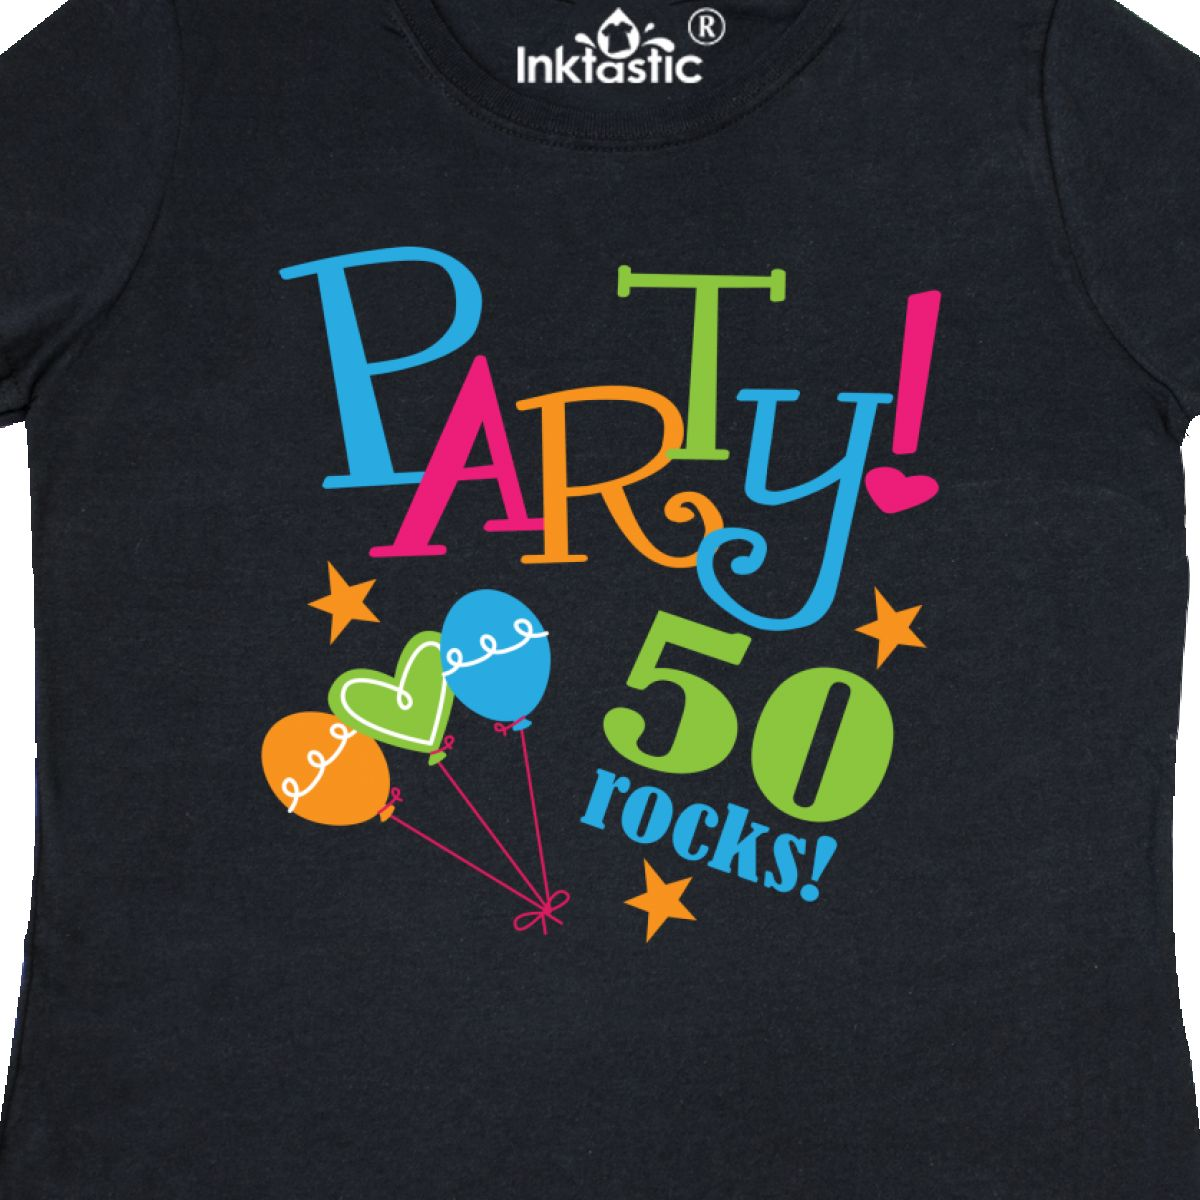 Inktastic 50th Birthday Party Gift Women 039 S T